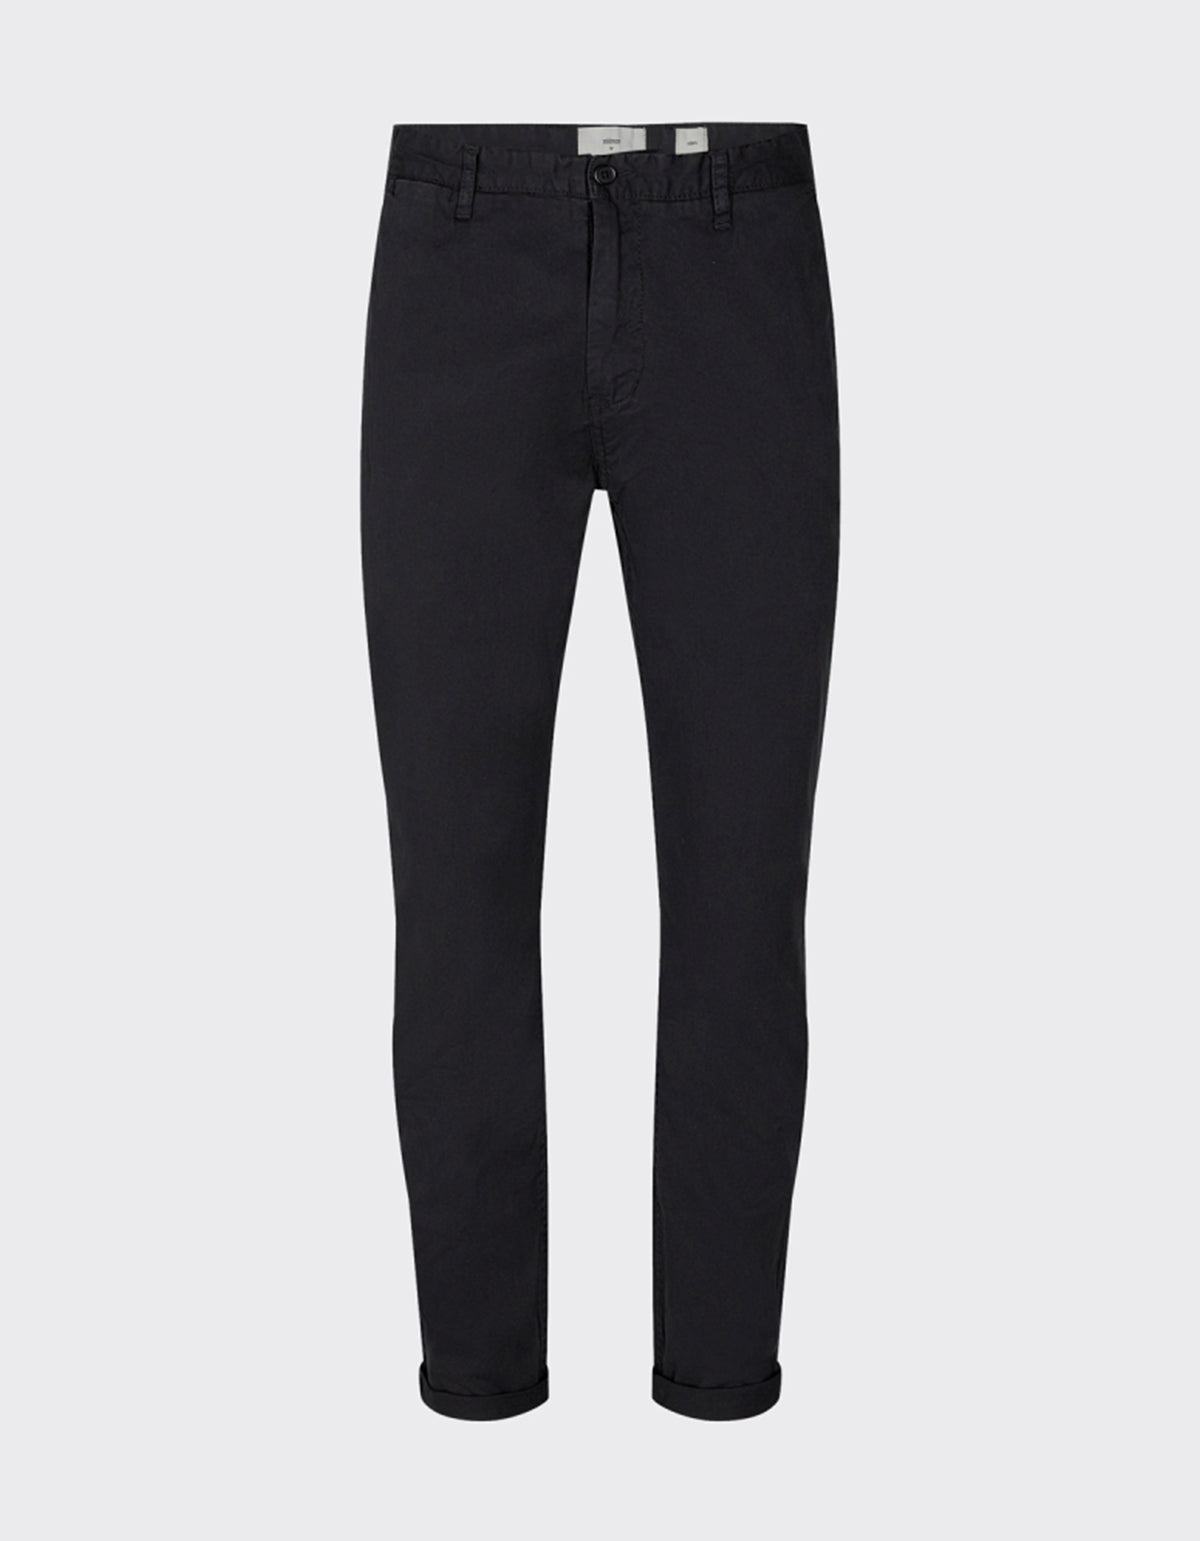 Minimum Norton 2.0 Chino, Black